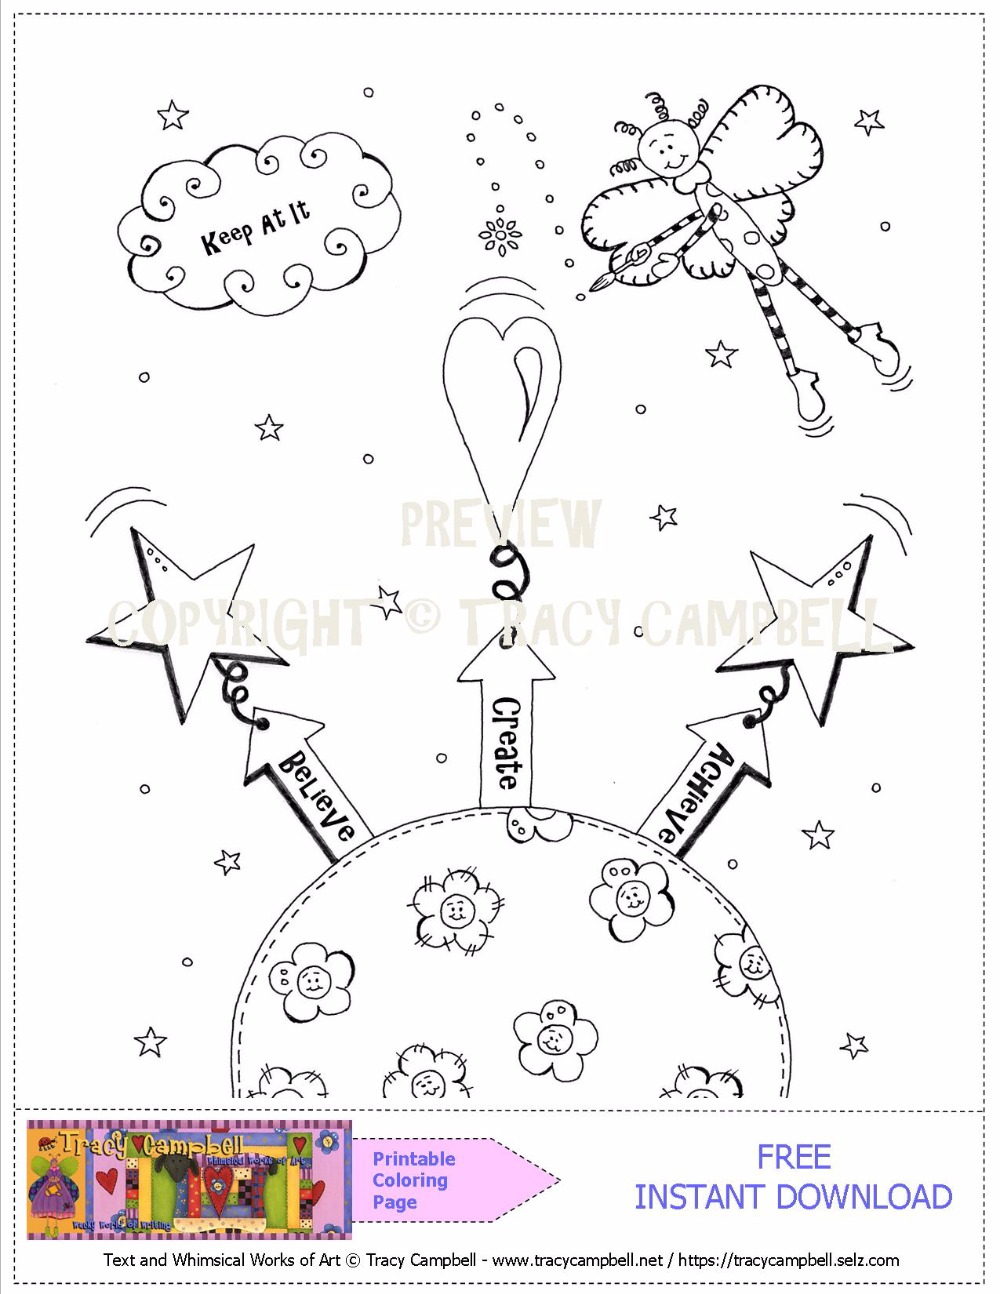 Free Printable Coloring Sheet